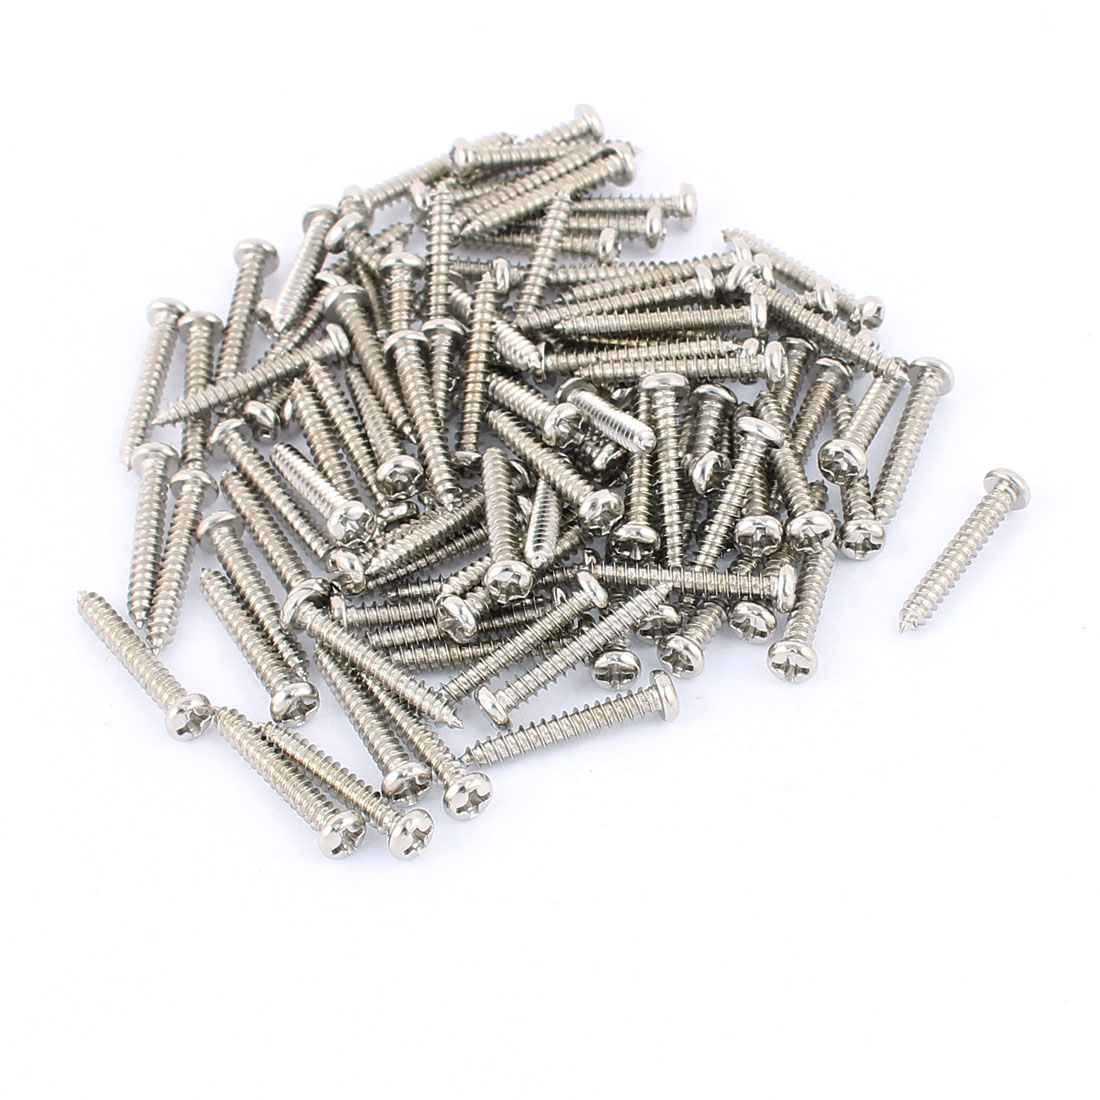 100 Pcs M3 x 20mm Stainless Steel Phillips Round Head Self Tapping Screws Bolts